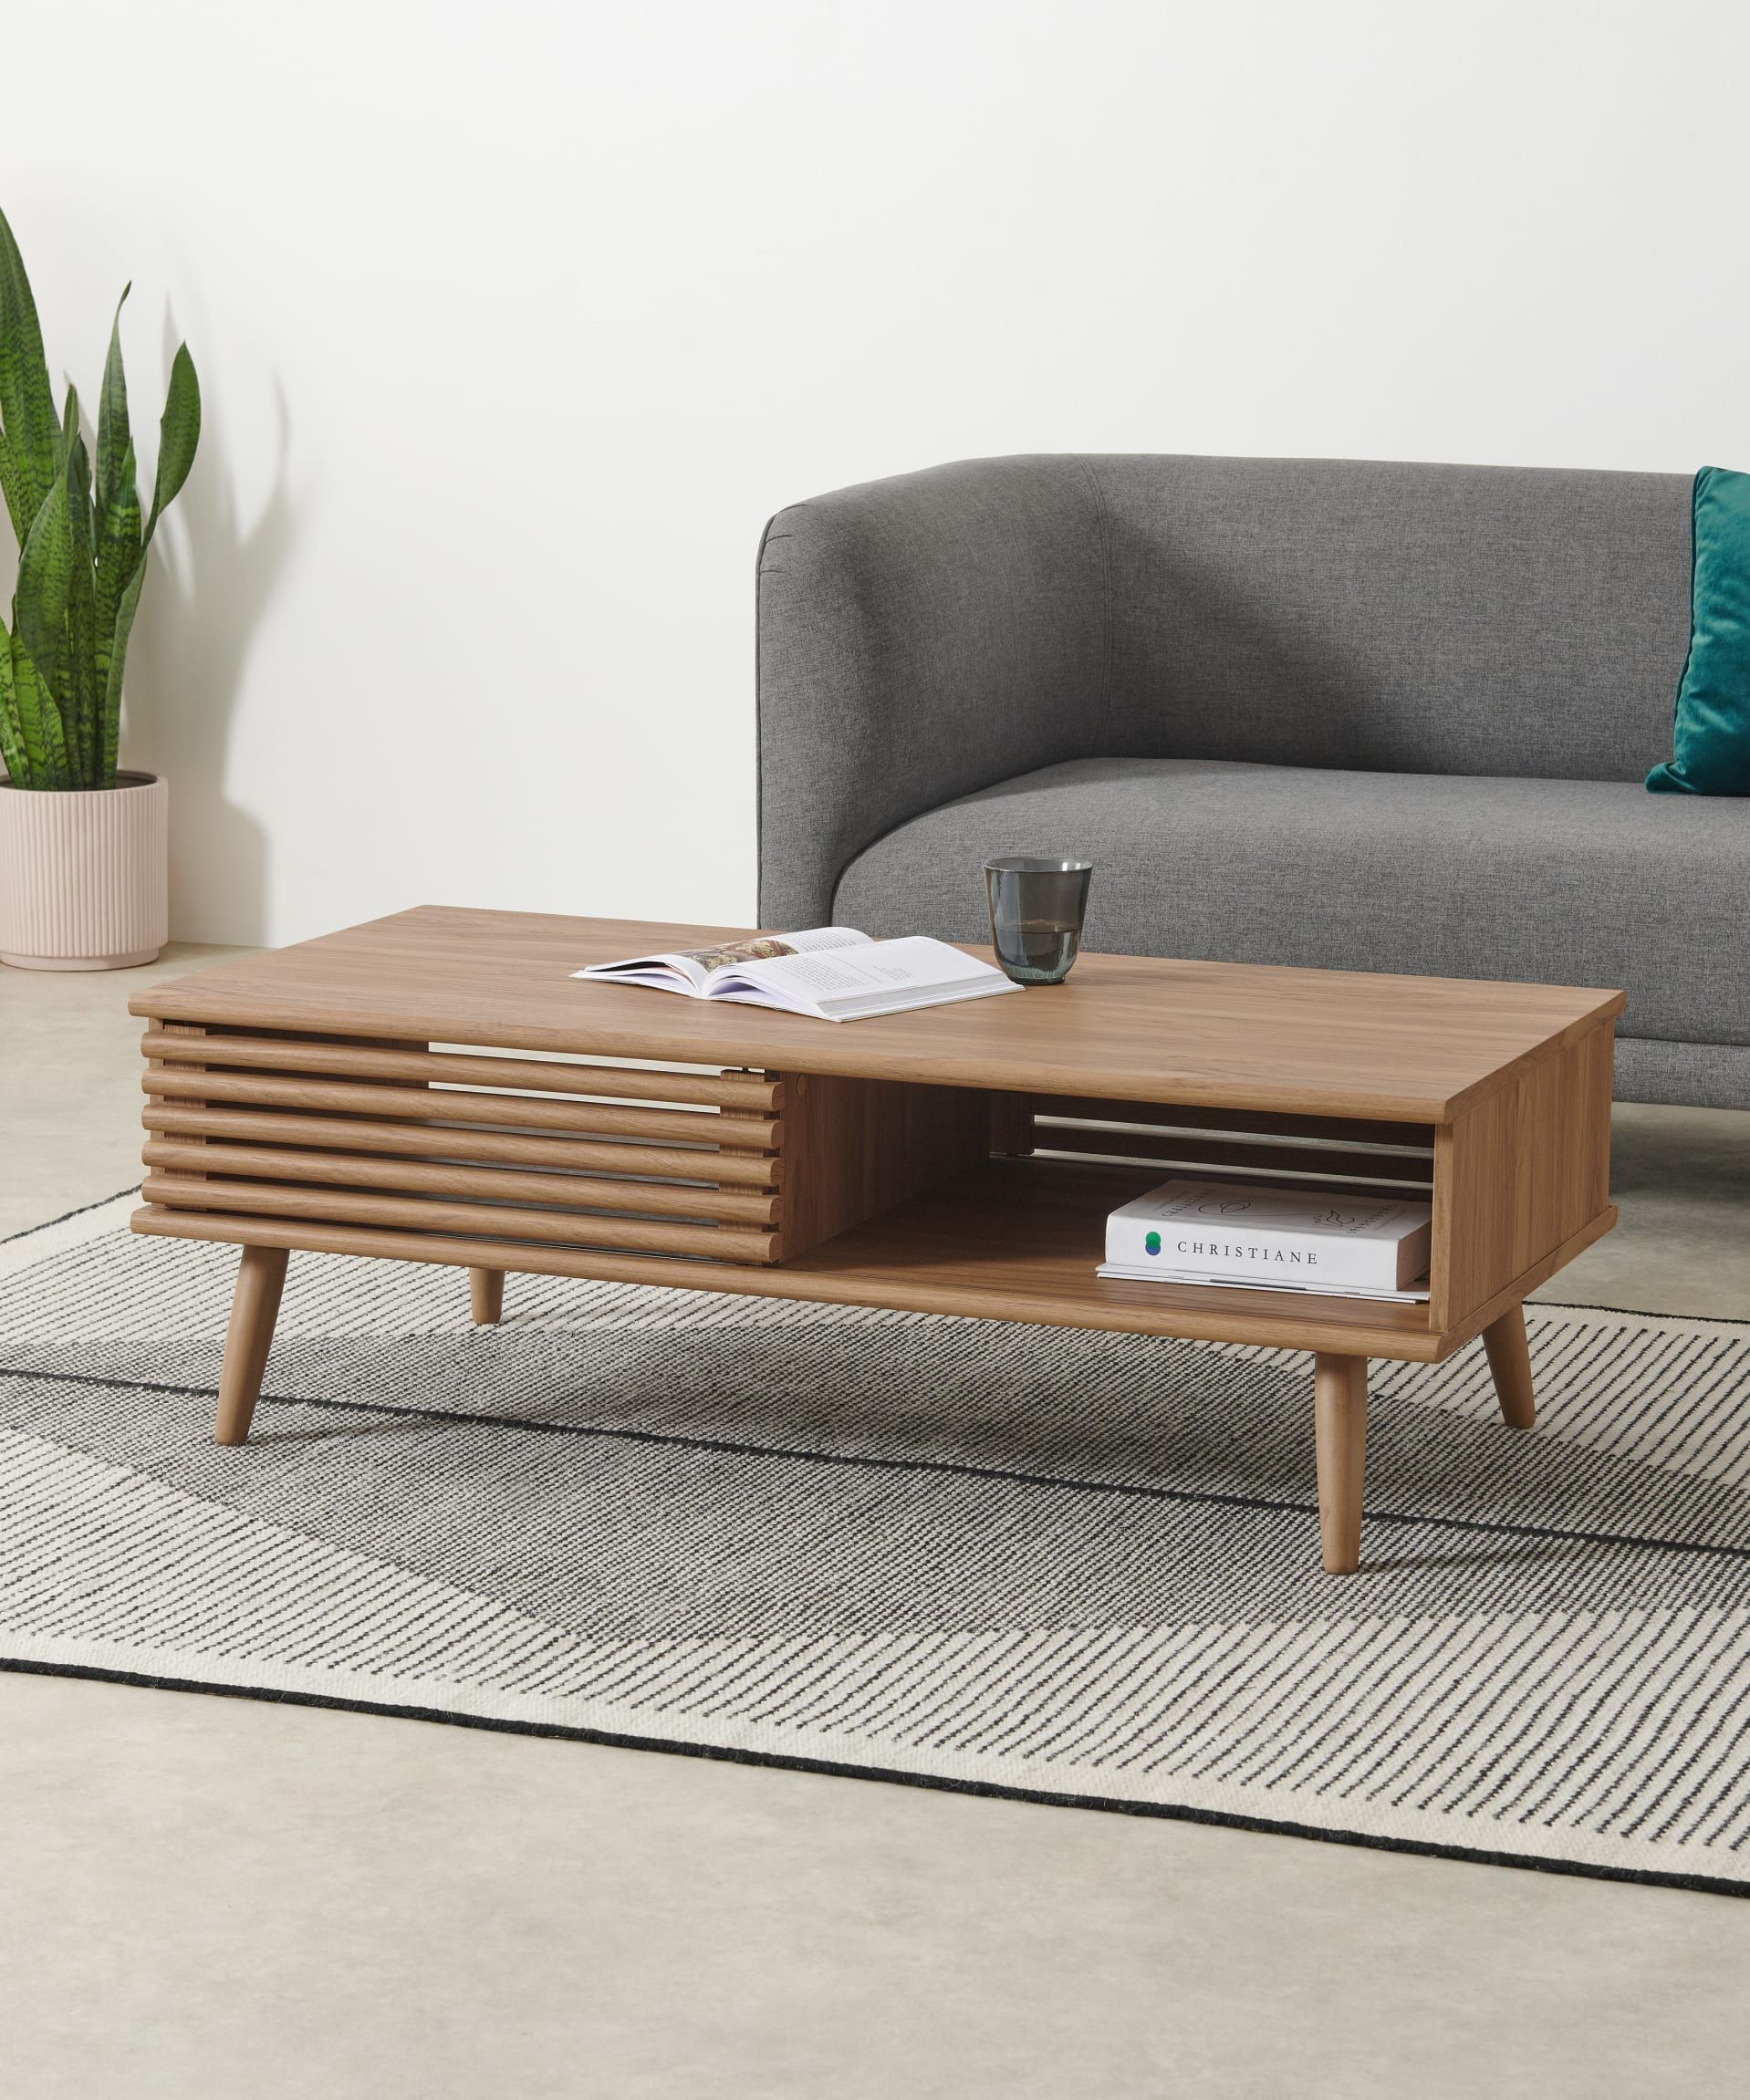 Tulma Storage Coffee Table Oak Effect Coffee Table For Small Living Room Coffee Table With Storage Coffee Table [ 2302 x 1918 Pixel ]